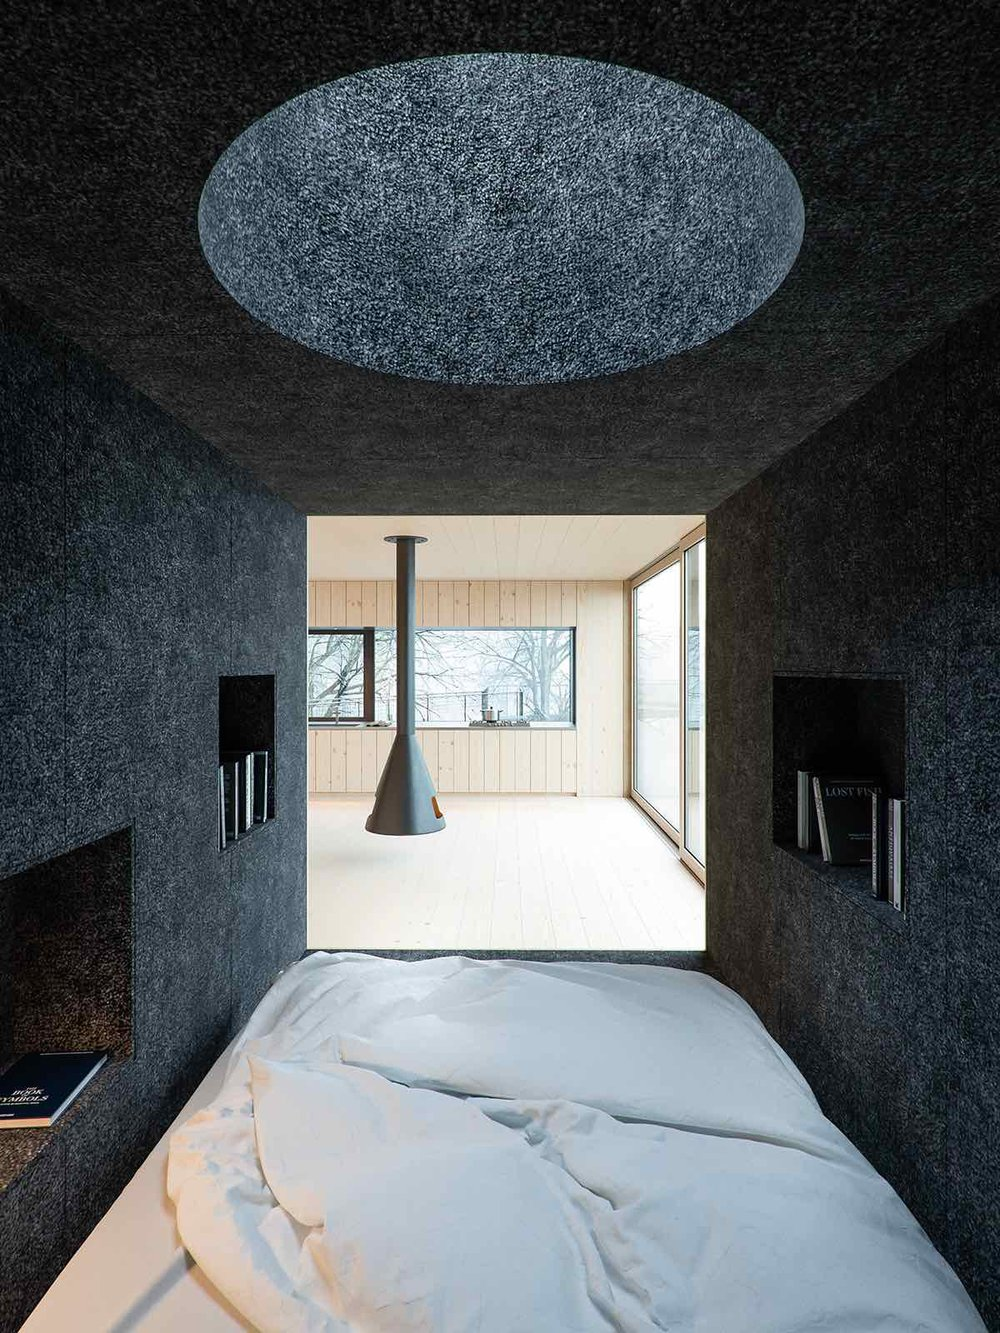 Mask House designed by WOJR